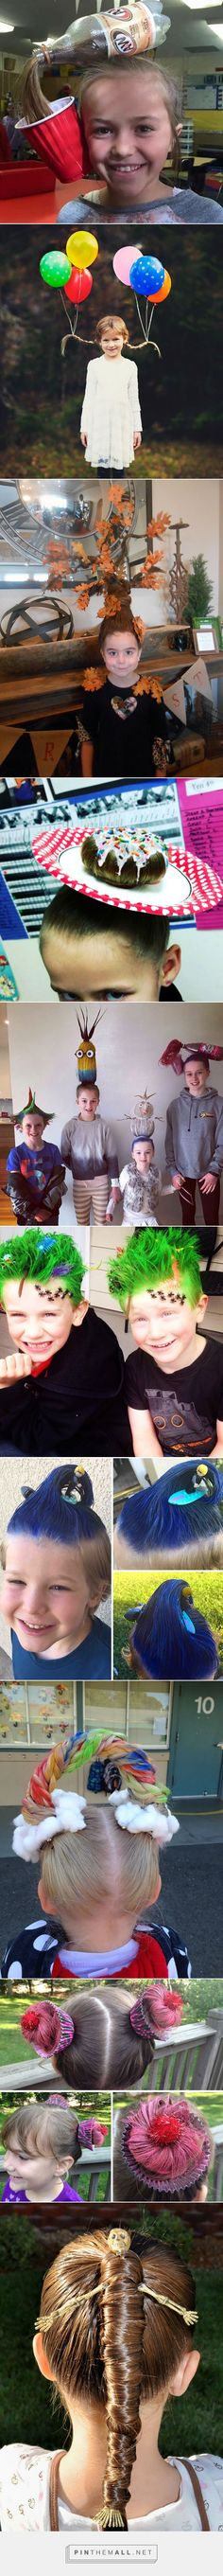 Crazy hair day ideas this is so awesome Crazy Hair Day At School, Crazy Hair Days, Little Girl Hairstyles, Cute Hairstyles, Latest Hairstyles, Wacky Hair Days, Halloween Karneval, Maquillage Halloween, Halloween Disfraces